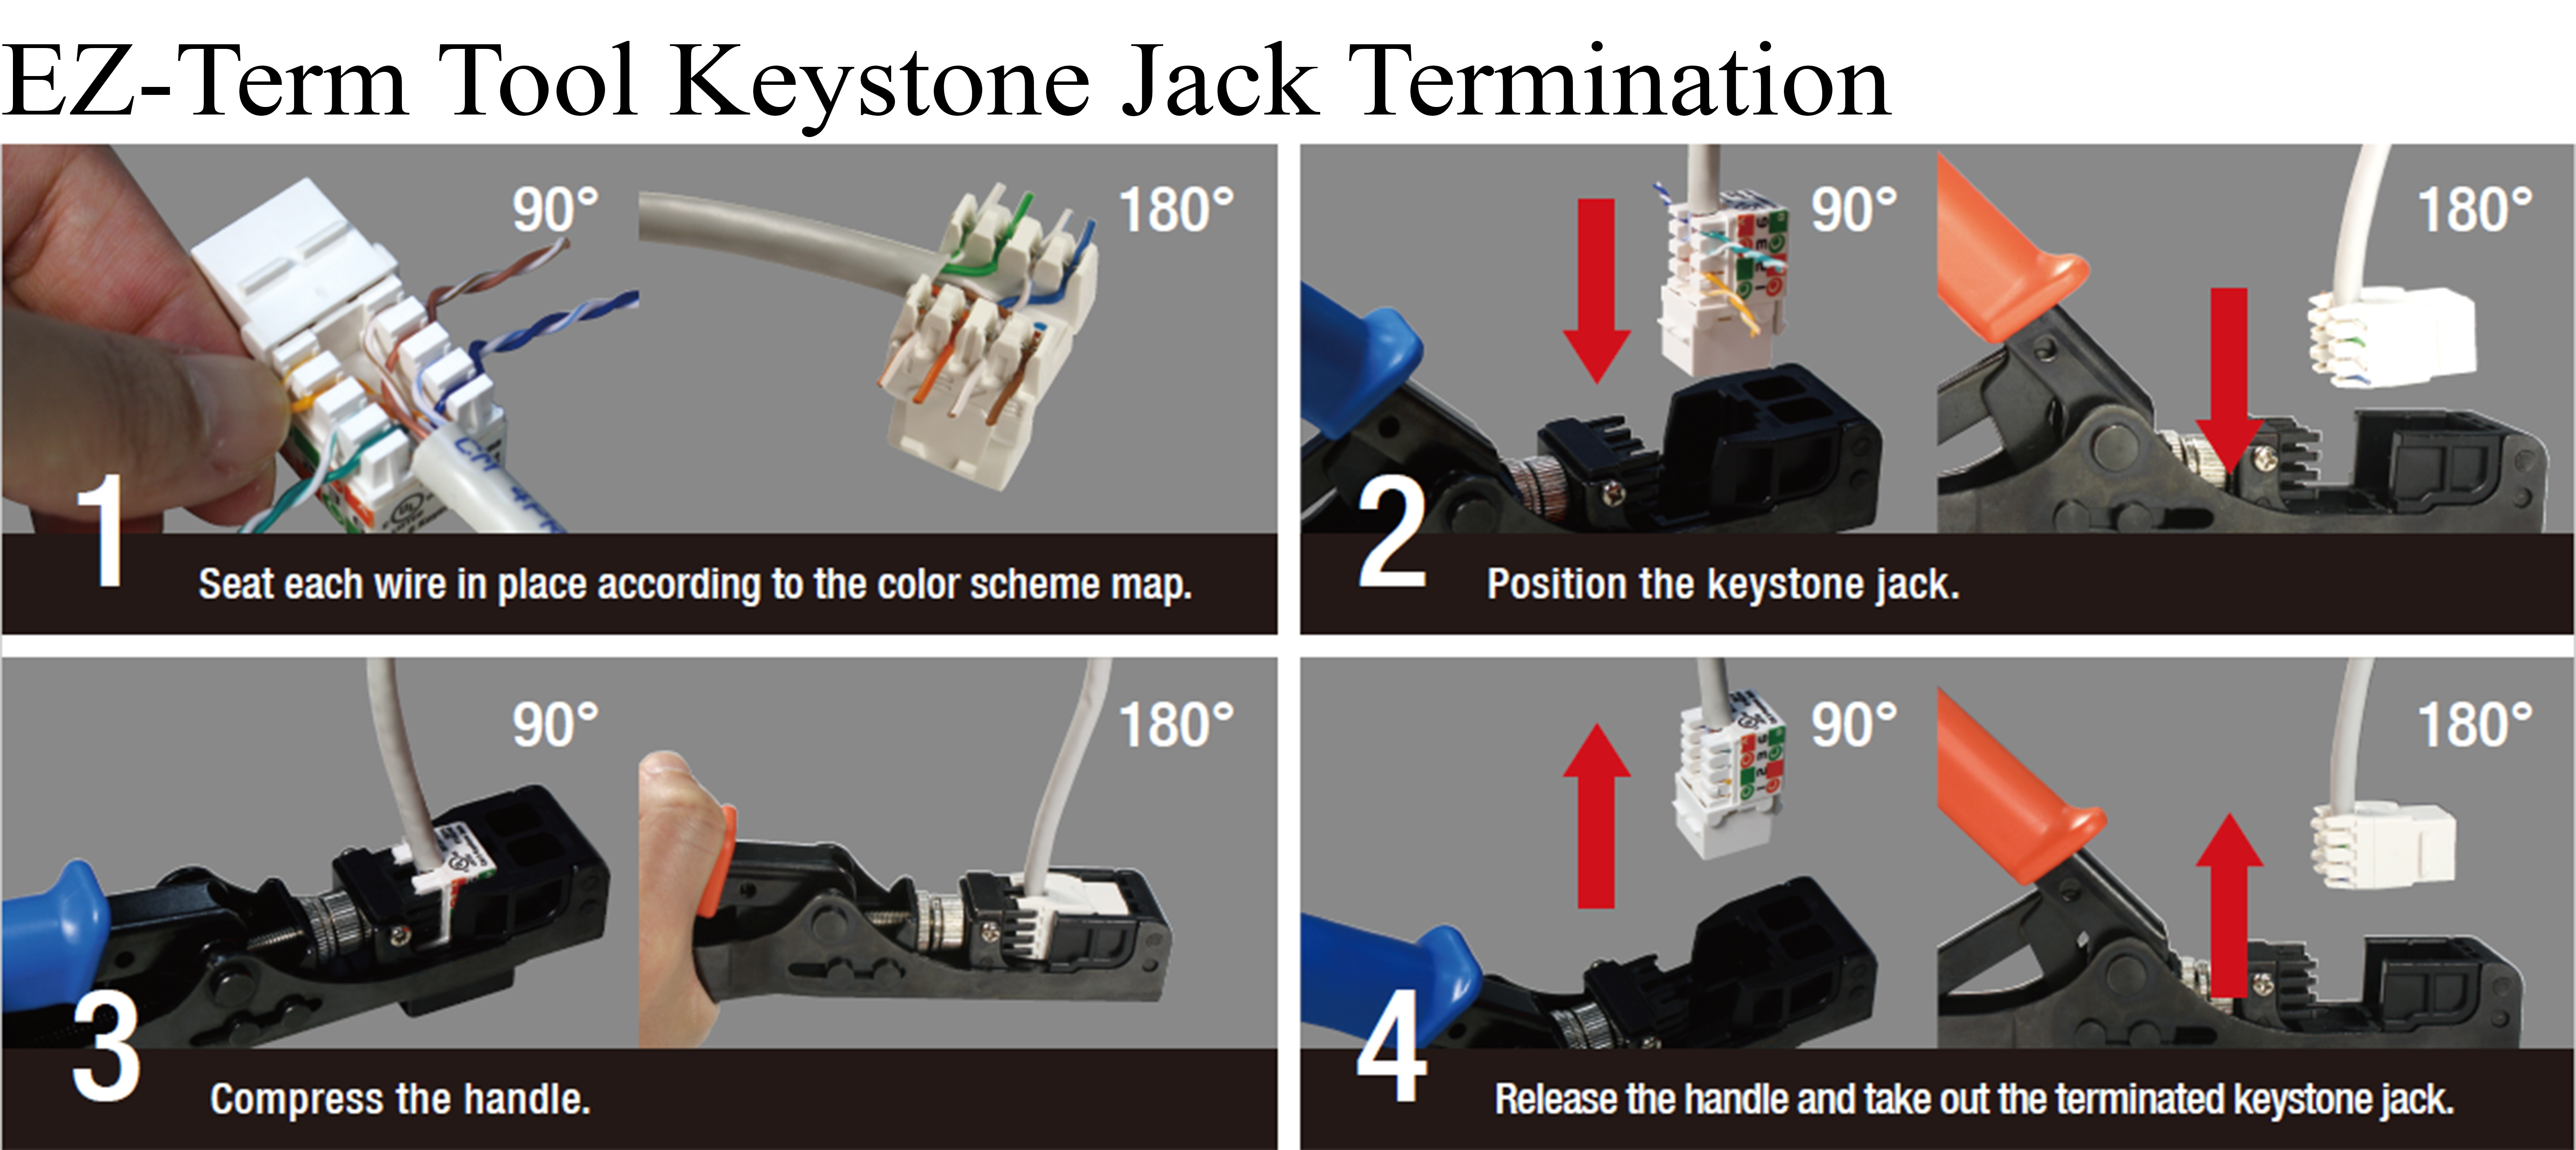 Speed Termination Tool For 90 Degree Keystone Jacks Electrical 110 Wiring Diagram This Is Suitable The Below